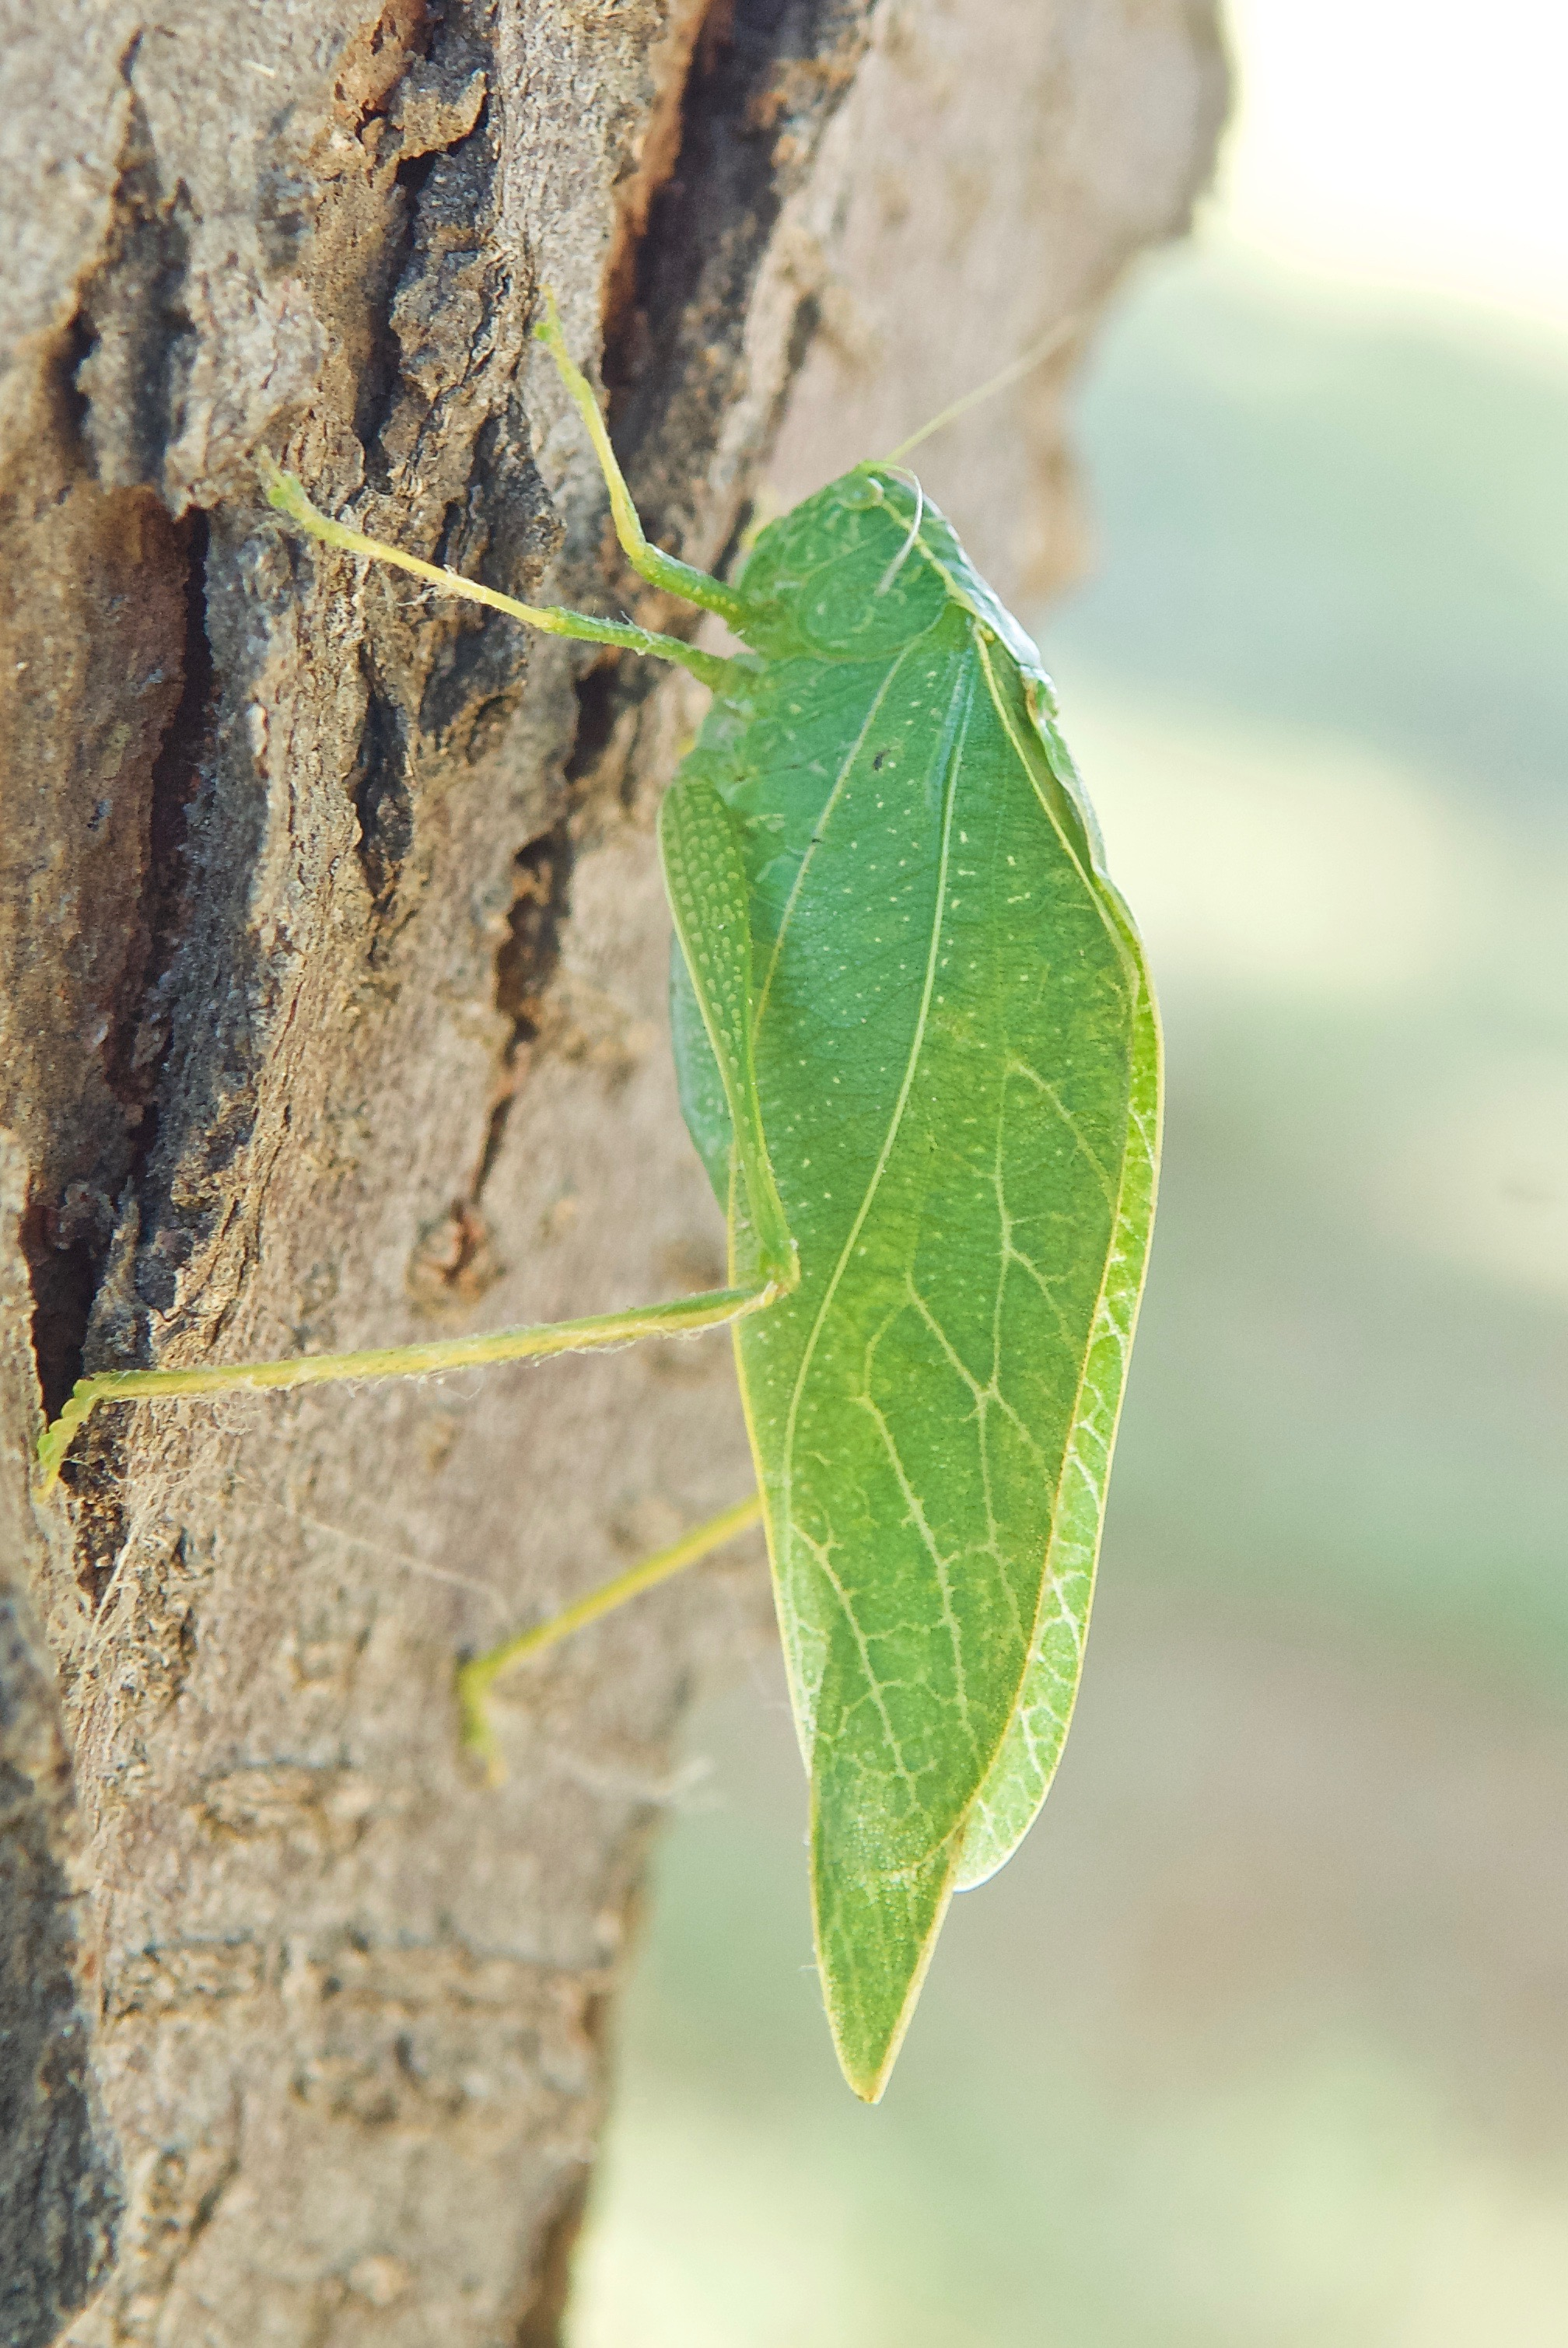 Greater Angle-Winged Katydid